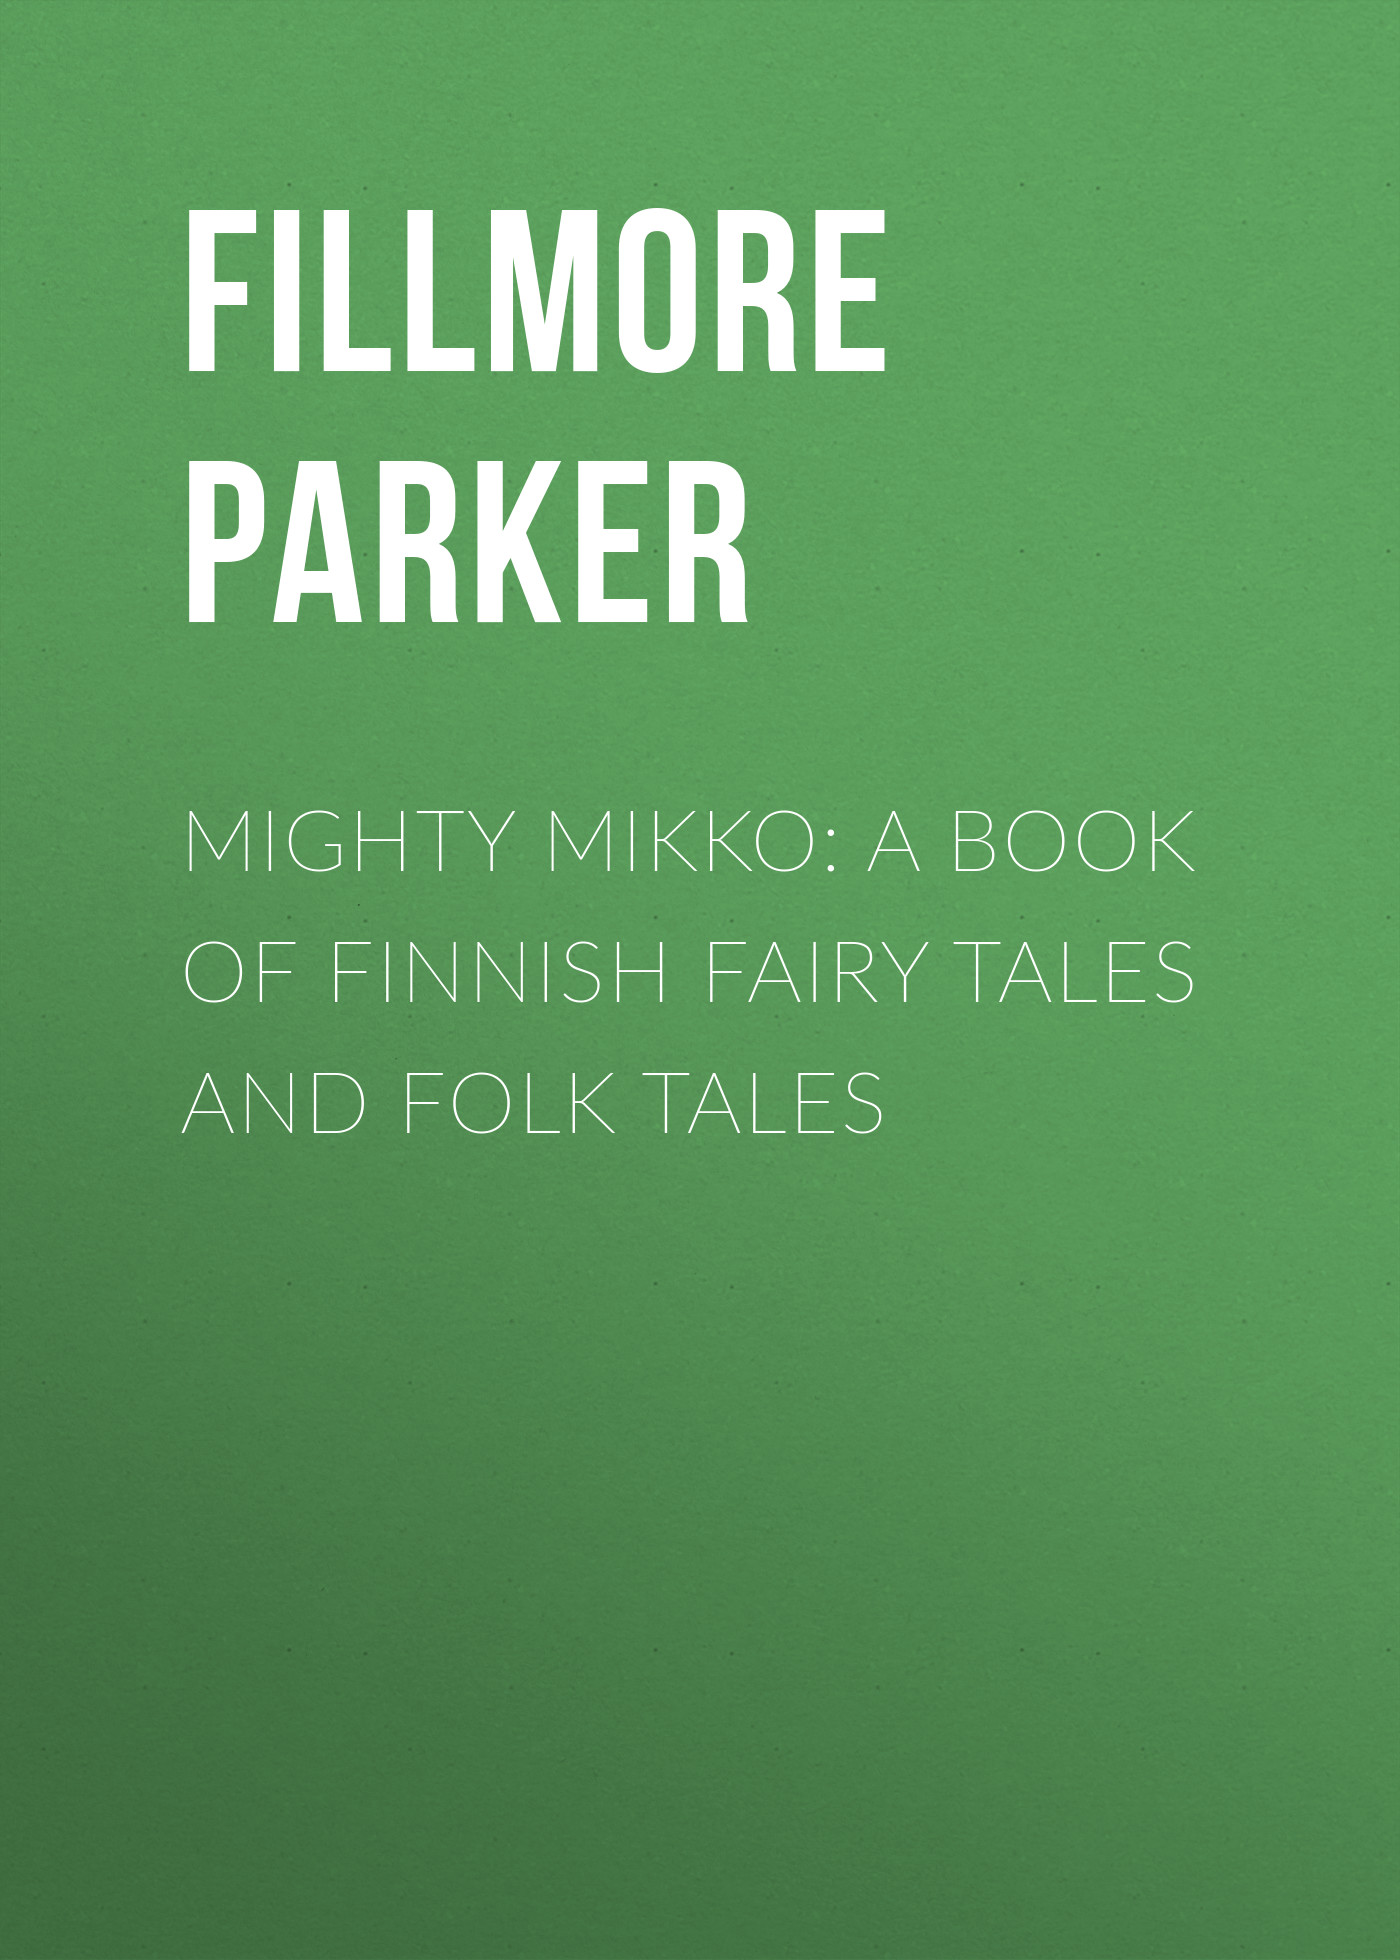 Fillmore Parker Mighty Mikko: A Book of Finnish Fairy Tales and Folk Tales fairy tales